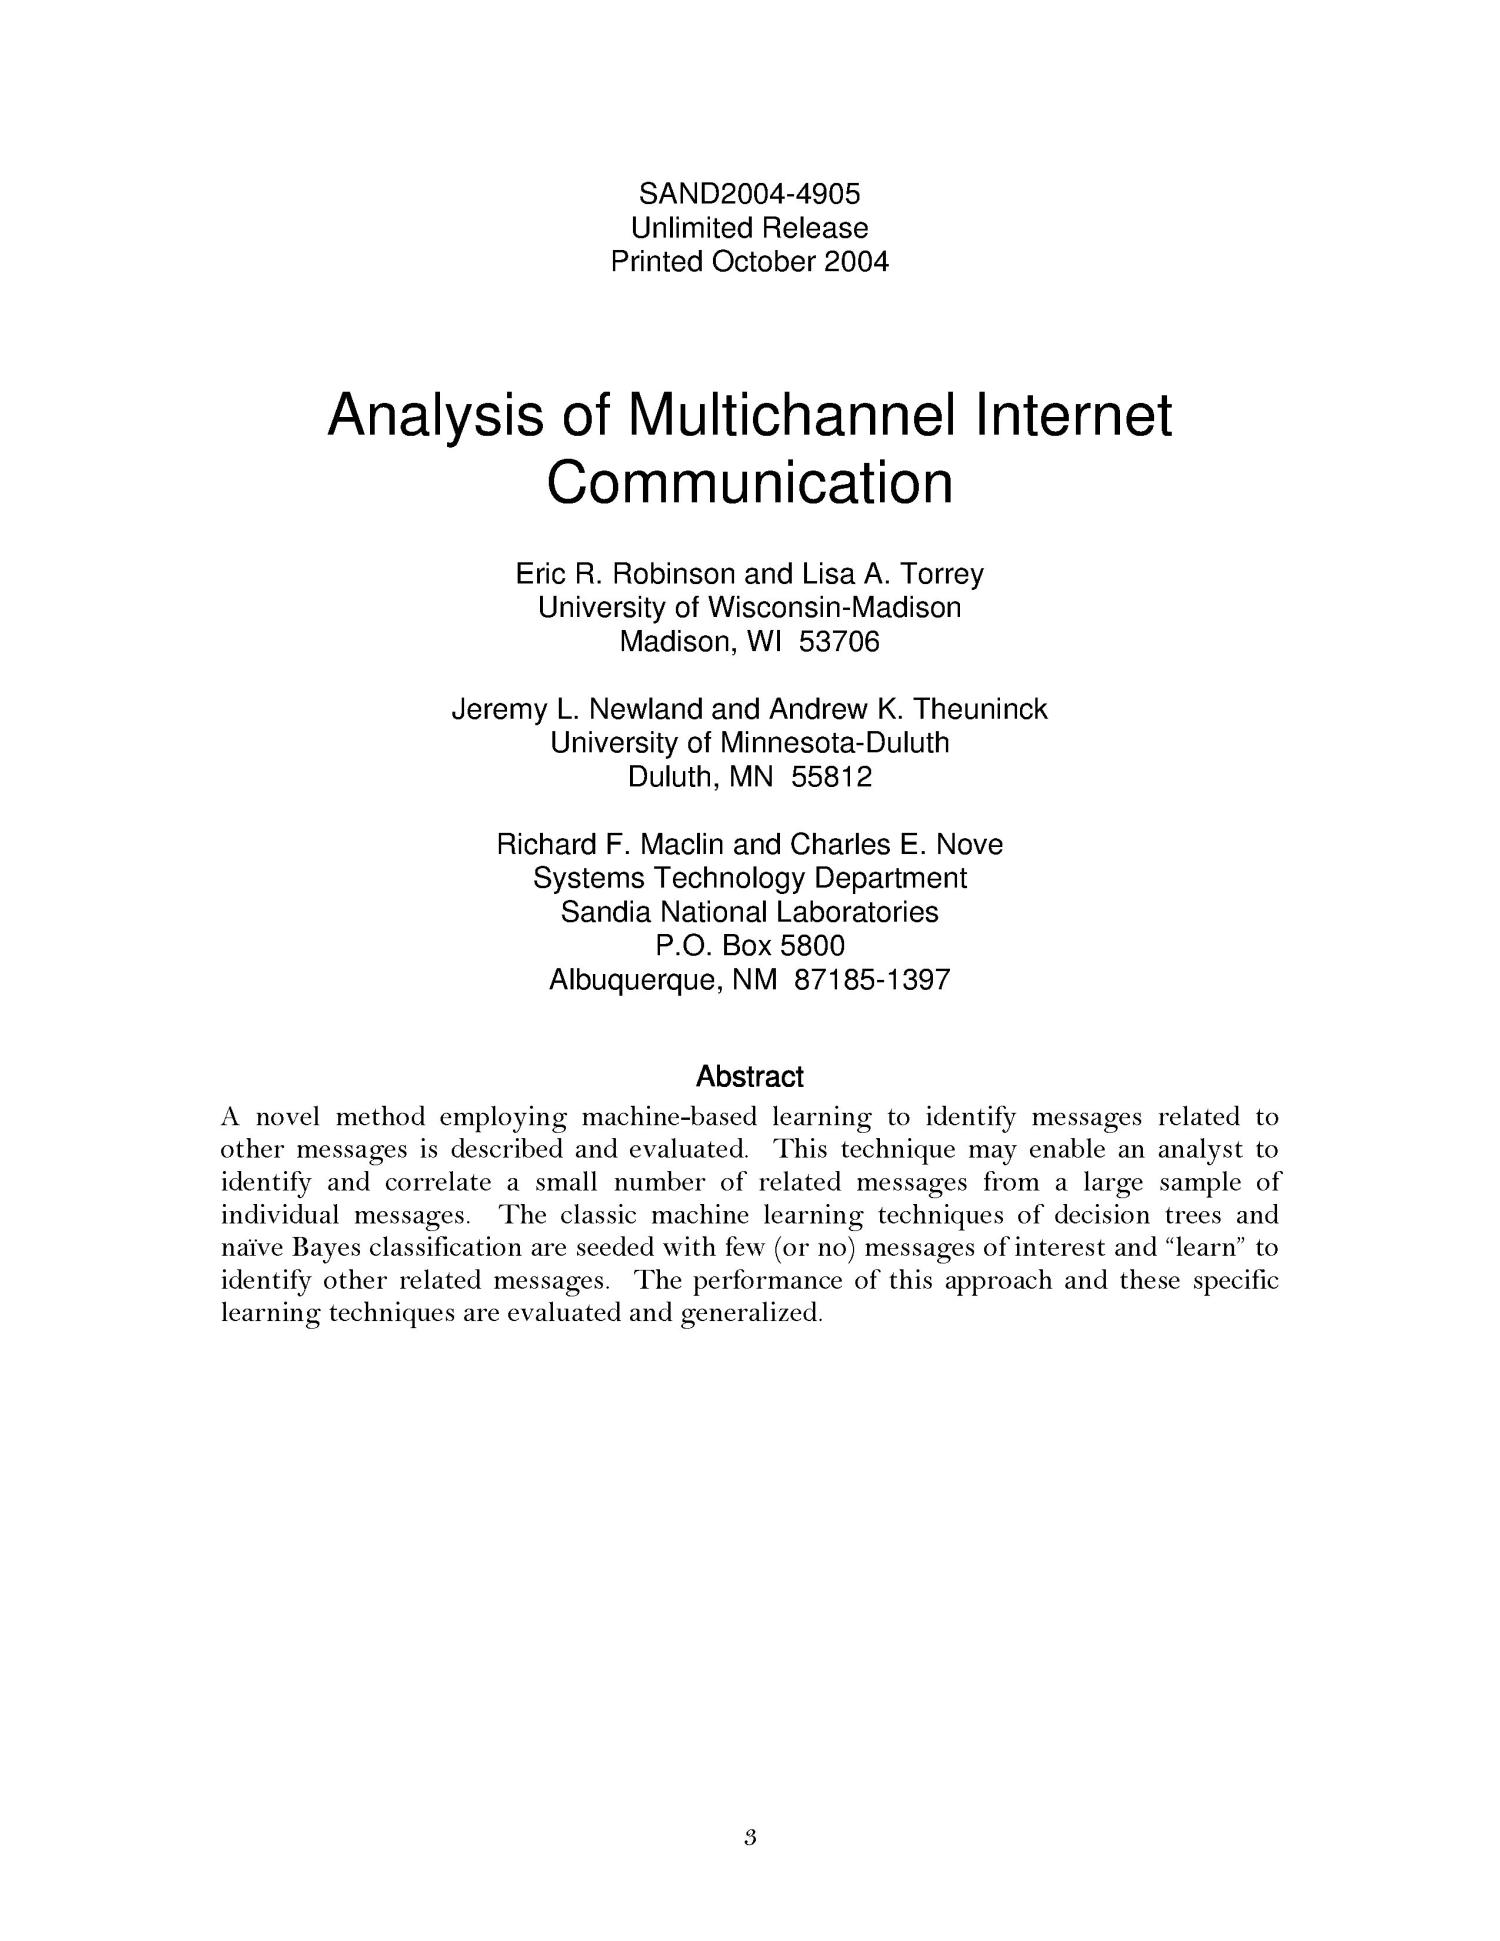 Analysis of multichannel internet communication.                                                                                                      [Sequence #]: 3 of 28